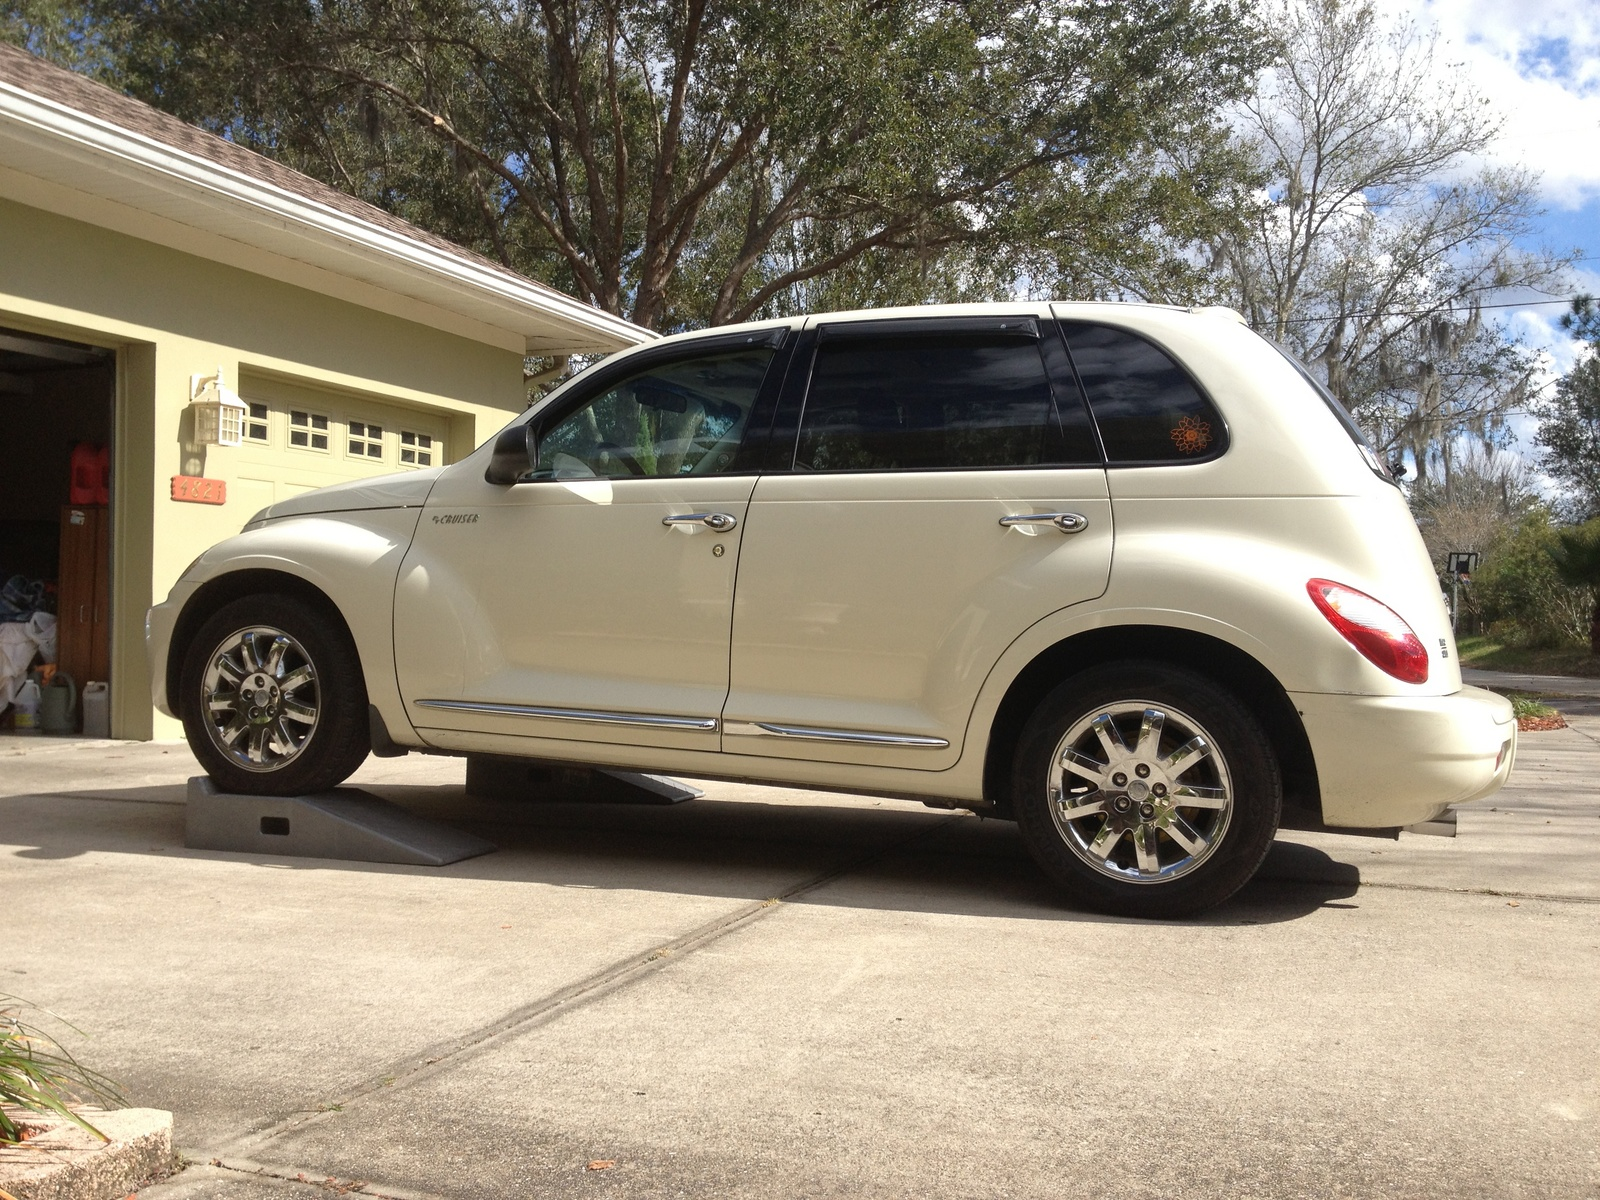 2002 chrysler pt cruiser accessories 2002 pt cruiser car. Black Bedroom Furniture Sets. Home Design Ideas